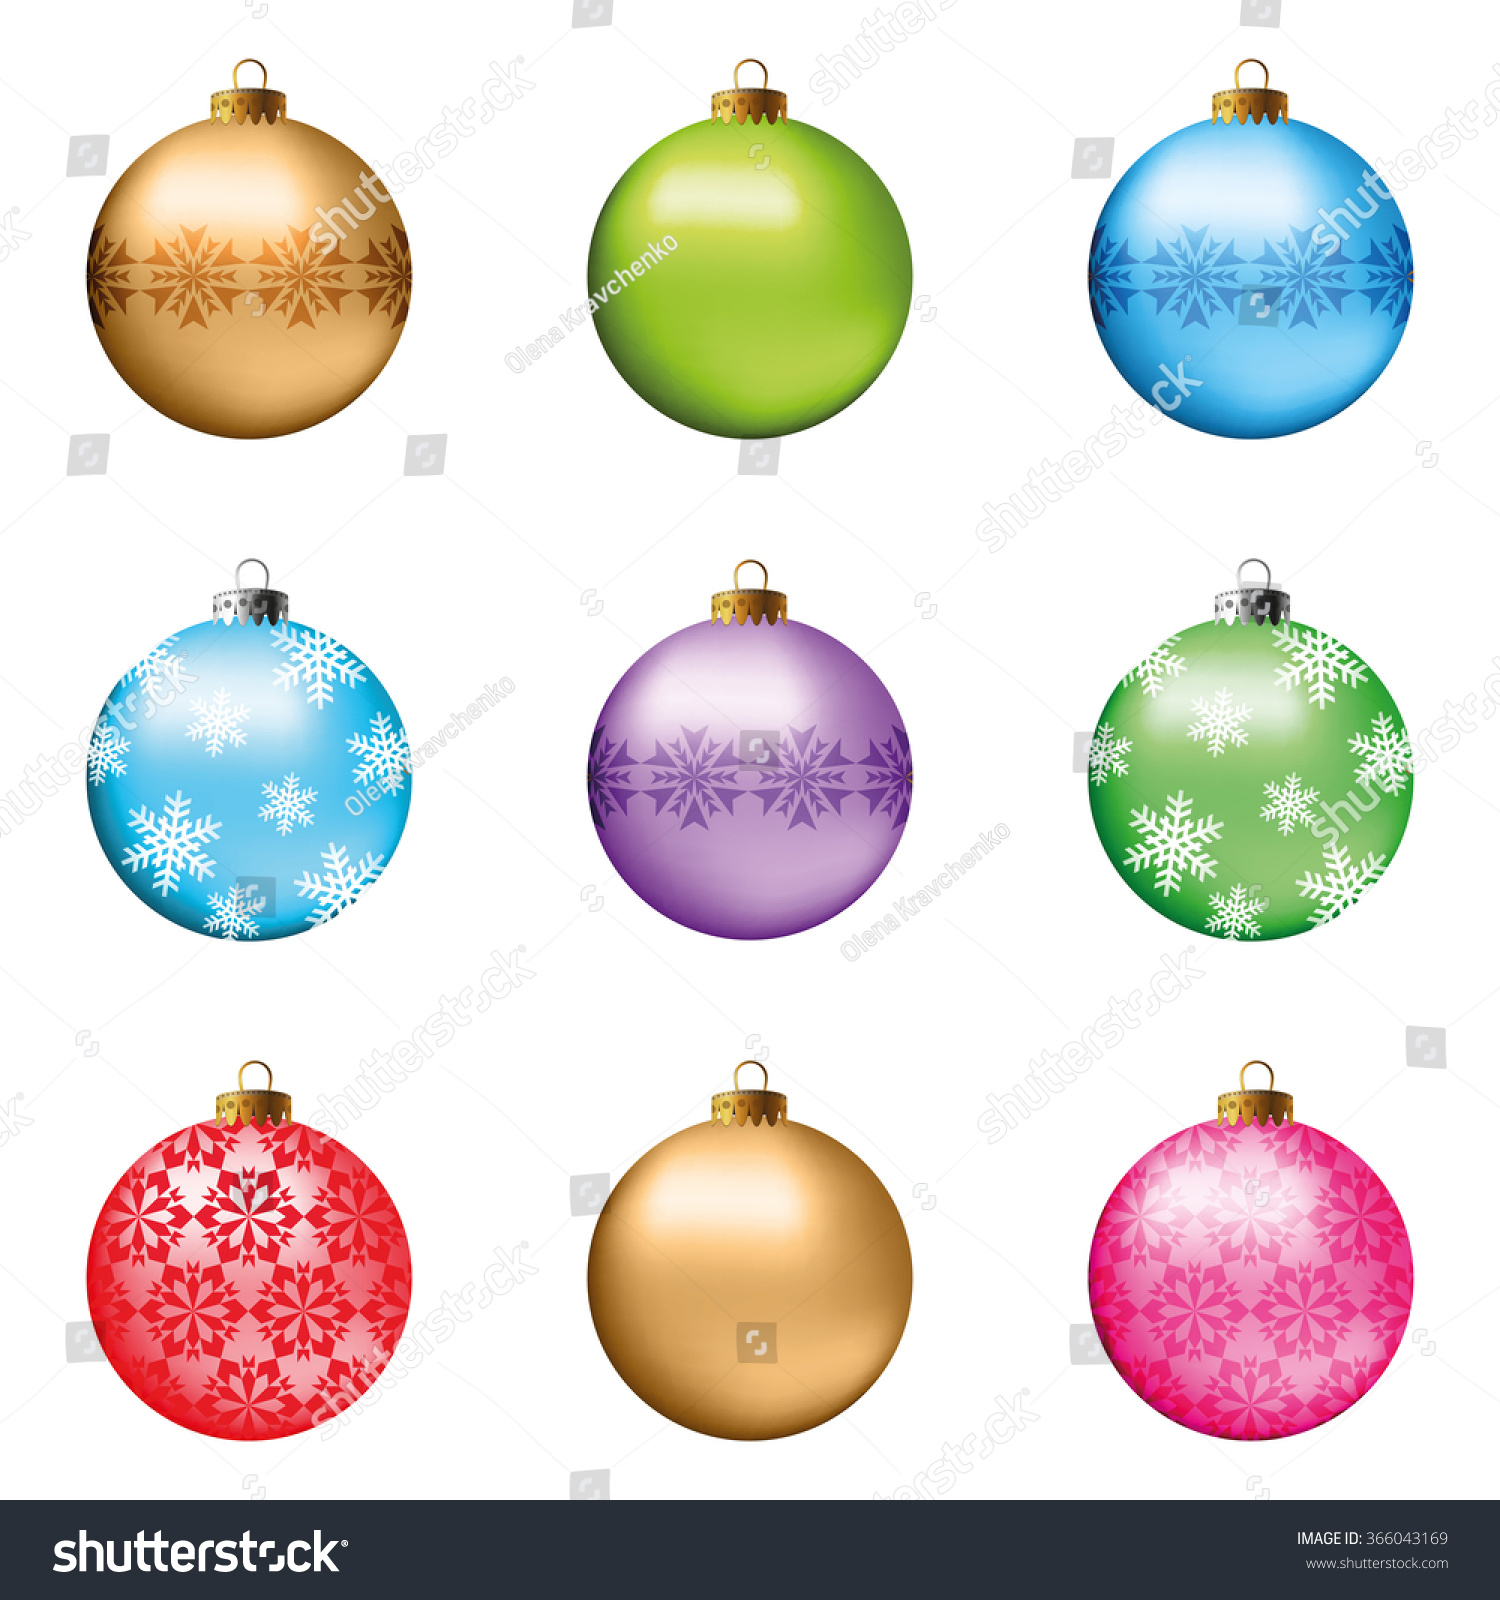 Set of 9 christmas ornaments with gold snowflakes. Vector ...